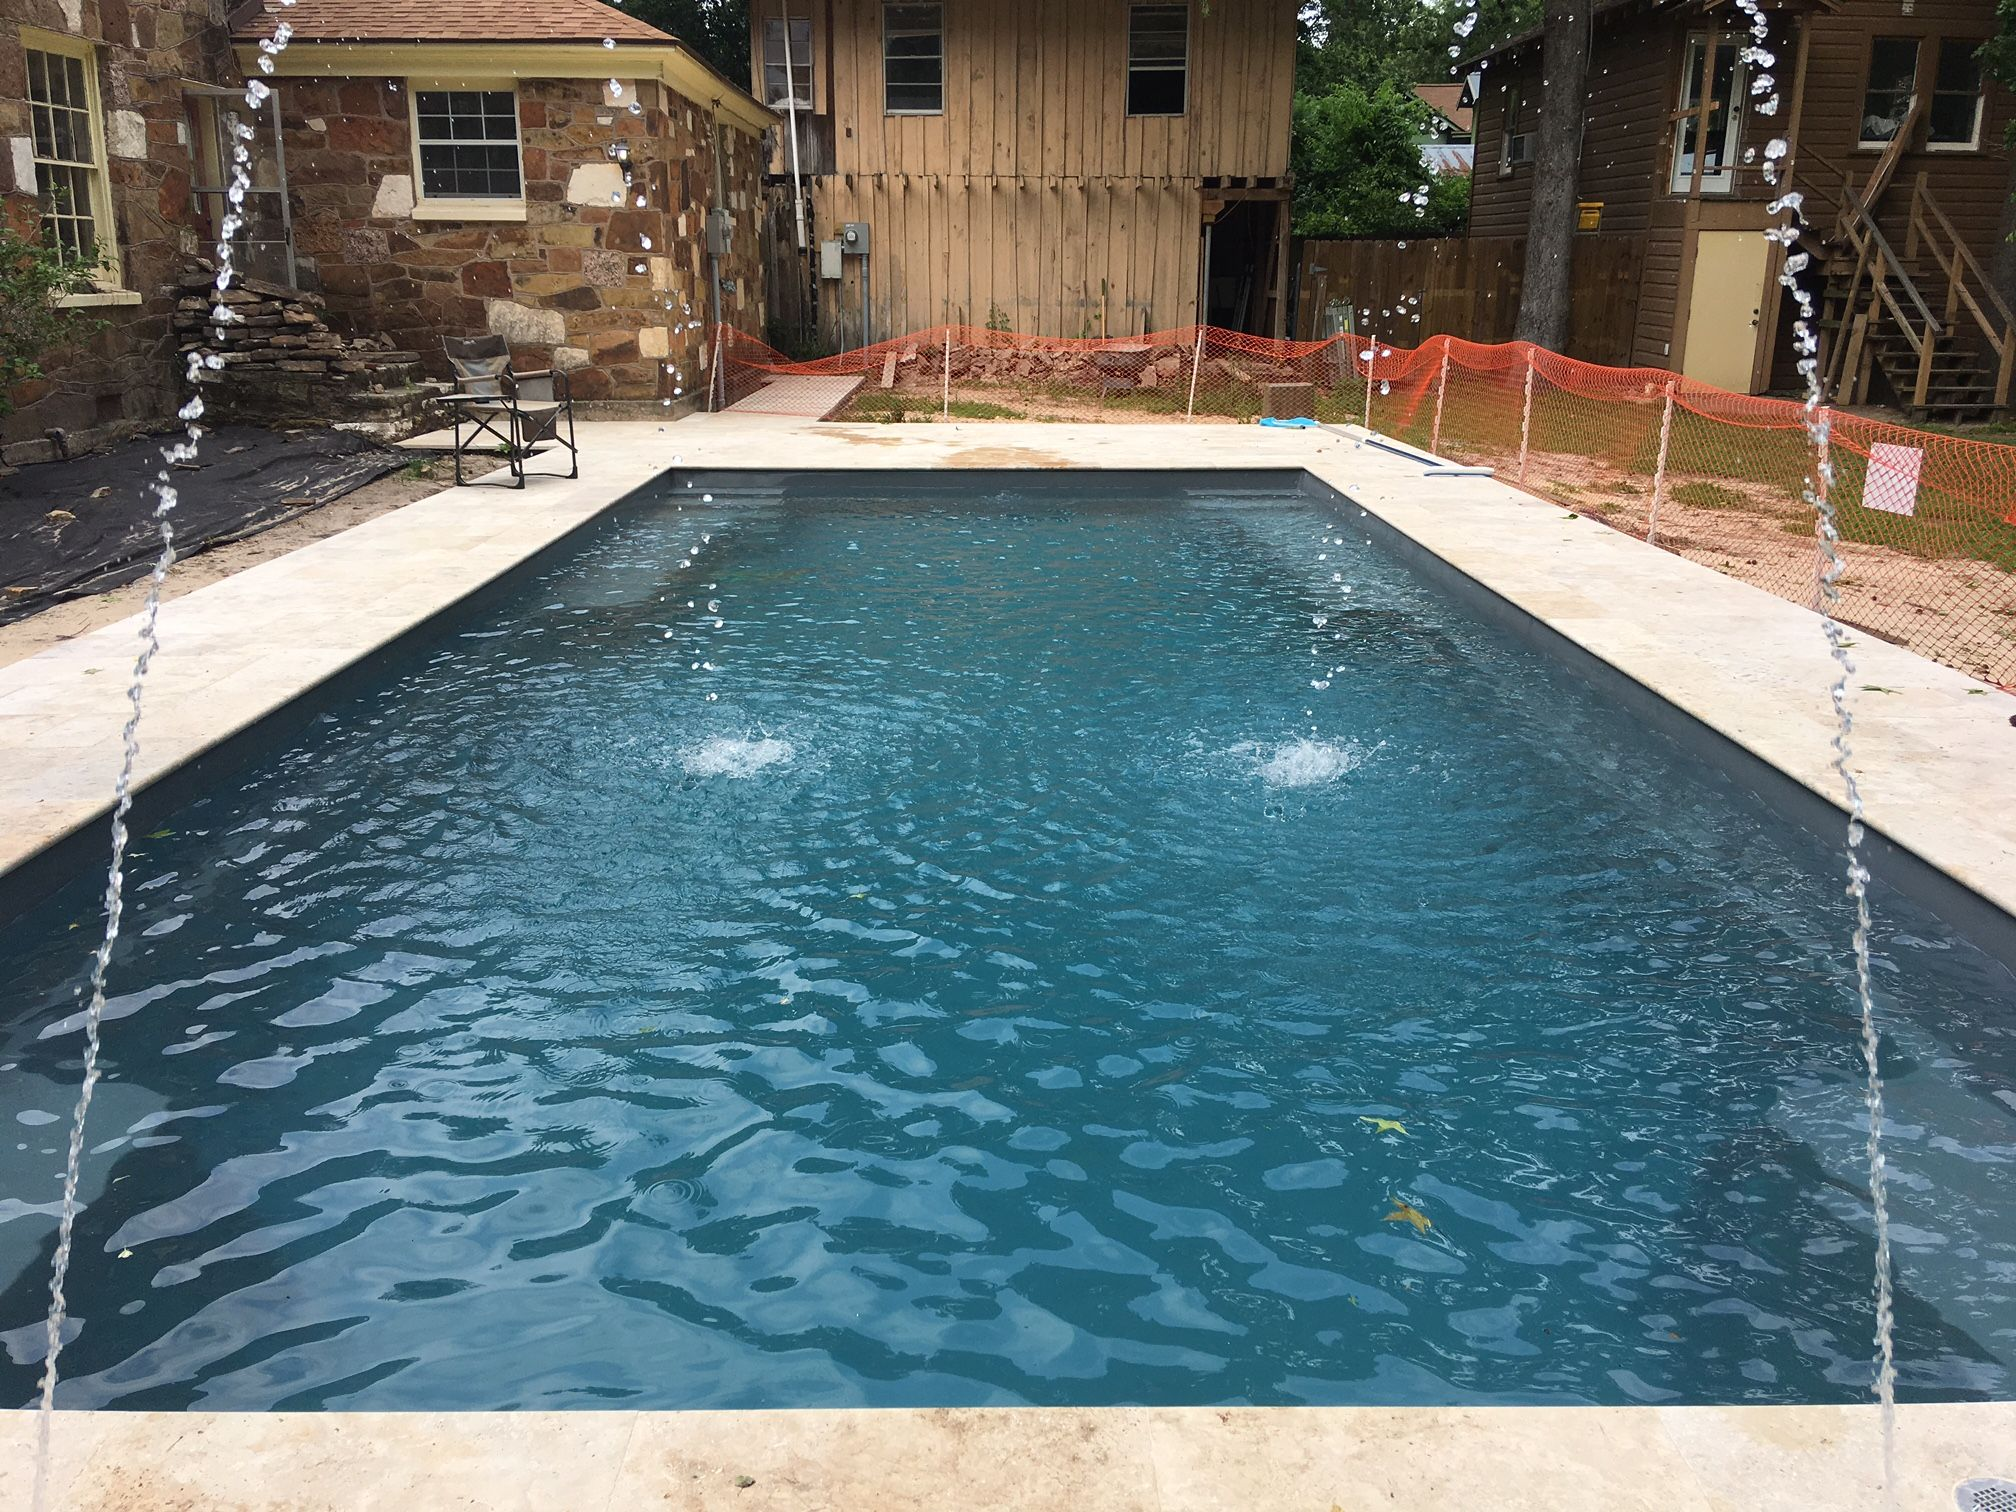 One Of Leisure Pools Newest Design Is The Supreme 35 Shown Here In Graphite Grey You Ve Got Entry Steps With Backyard Pool Small Pool Design Leisure Pools